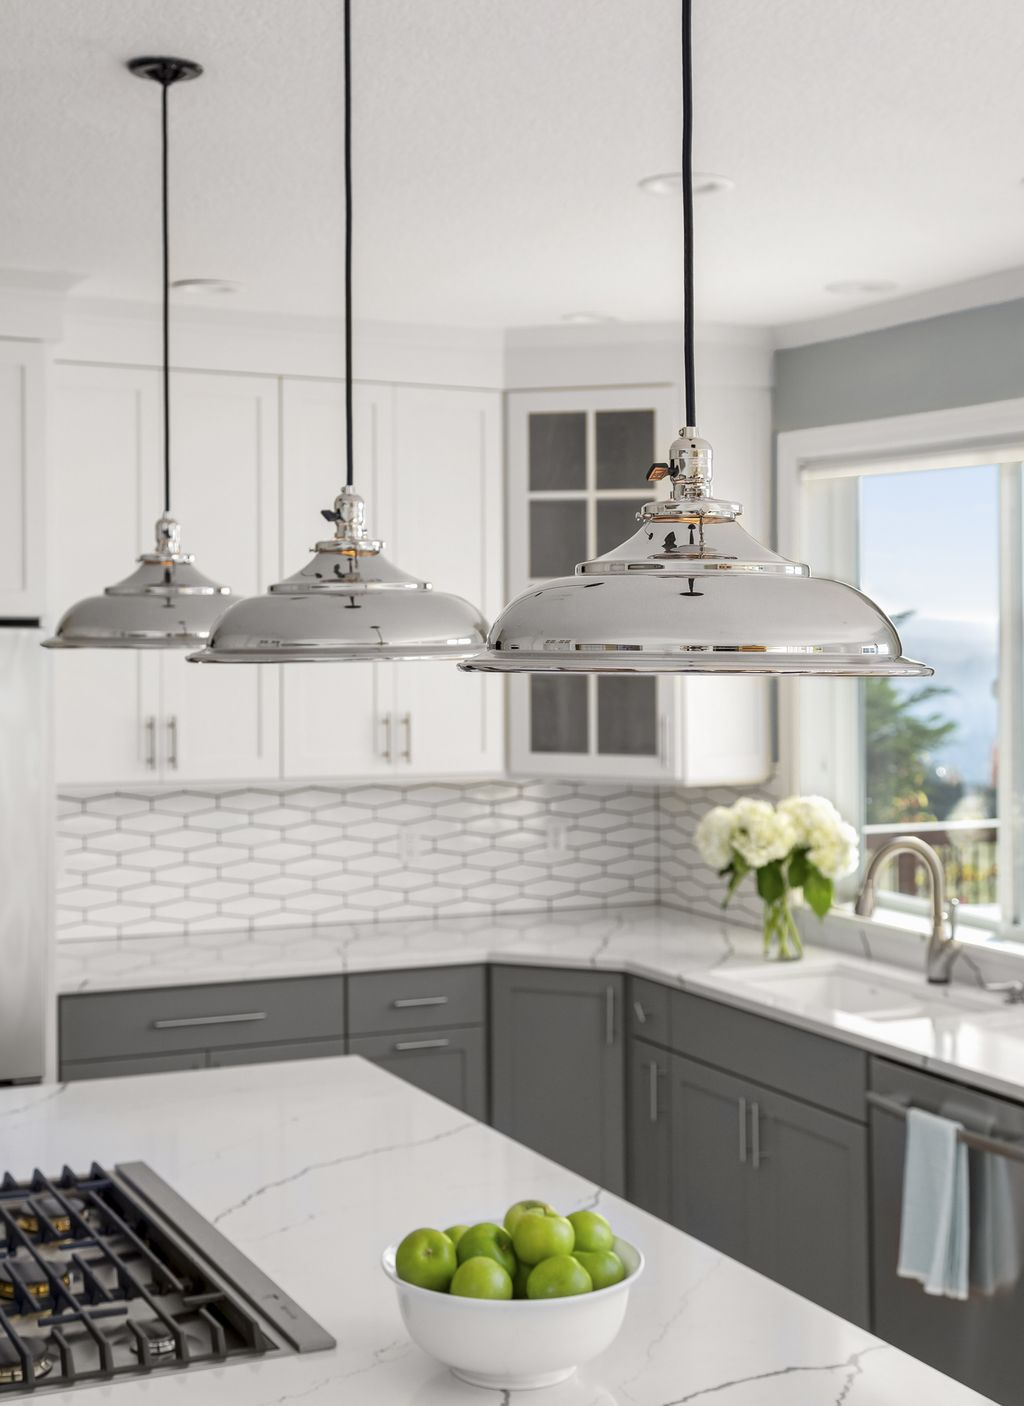 A Dream Kitchen For Entertaining and Family